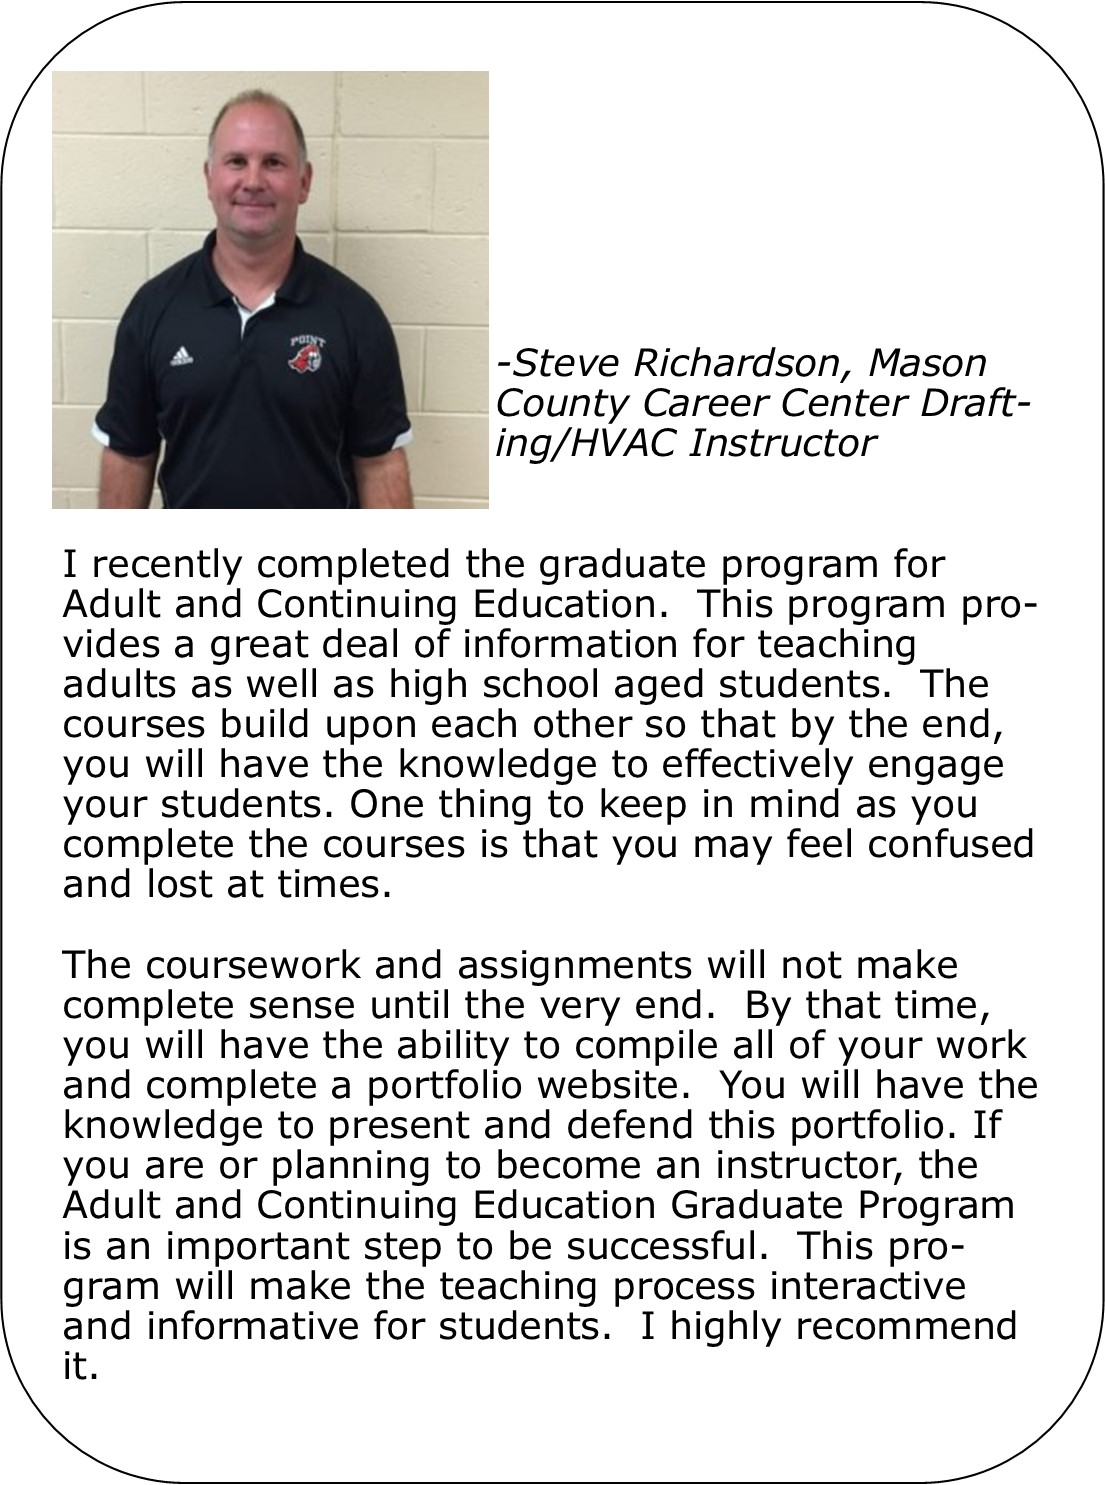 Adult career continuing education are absolutely